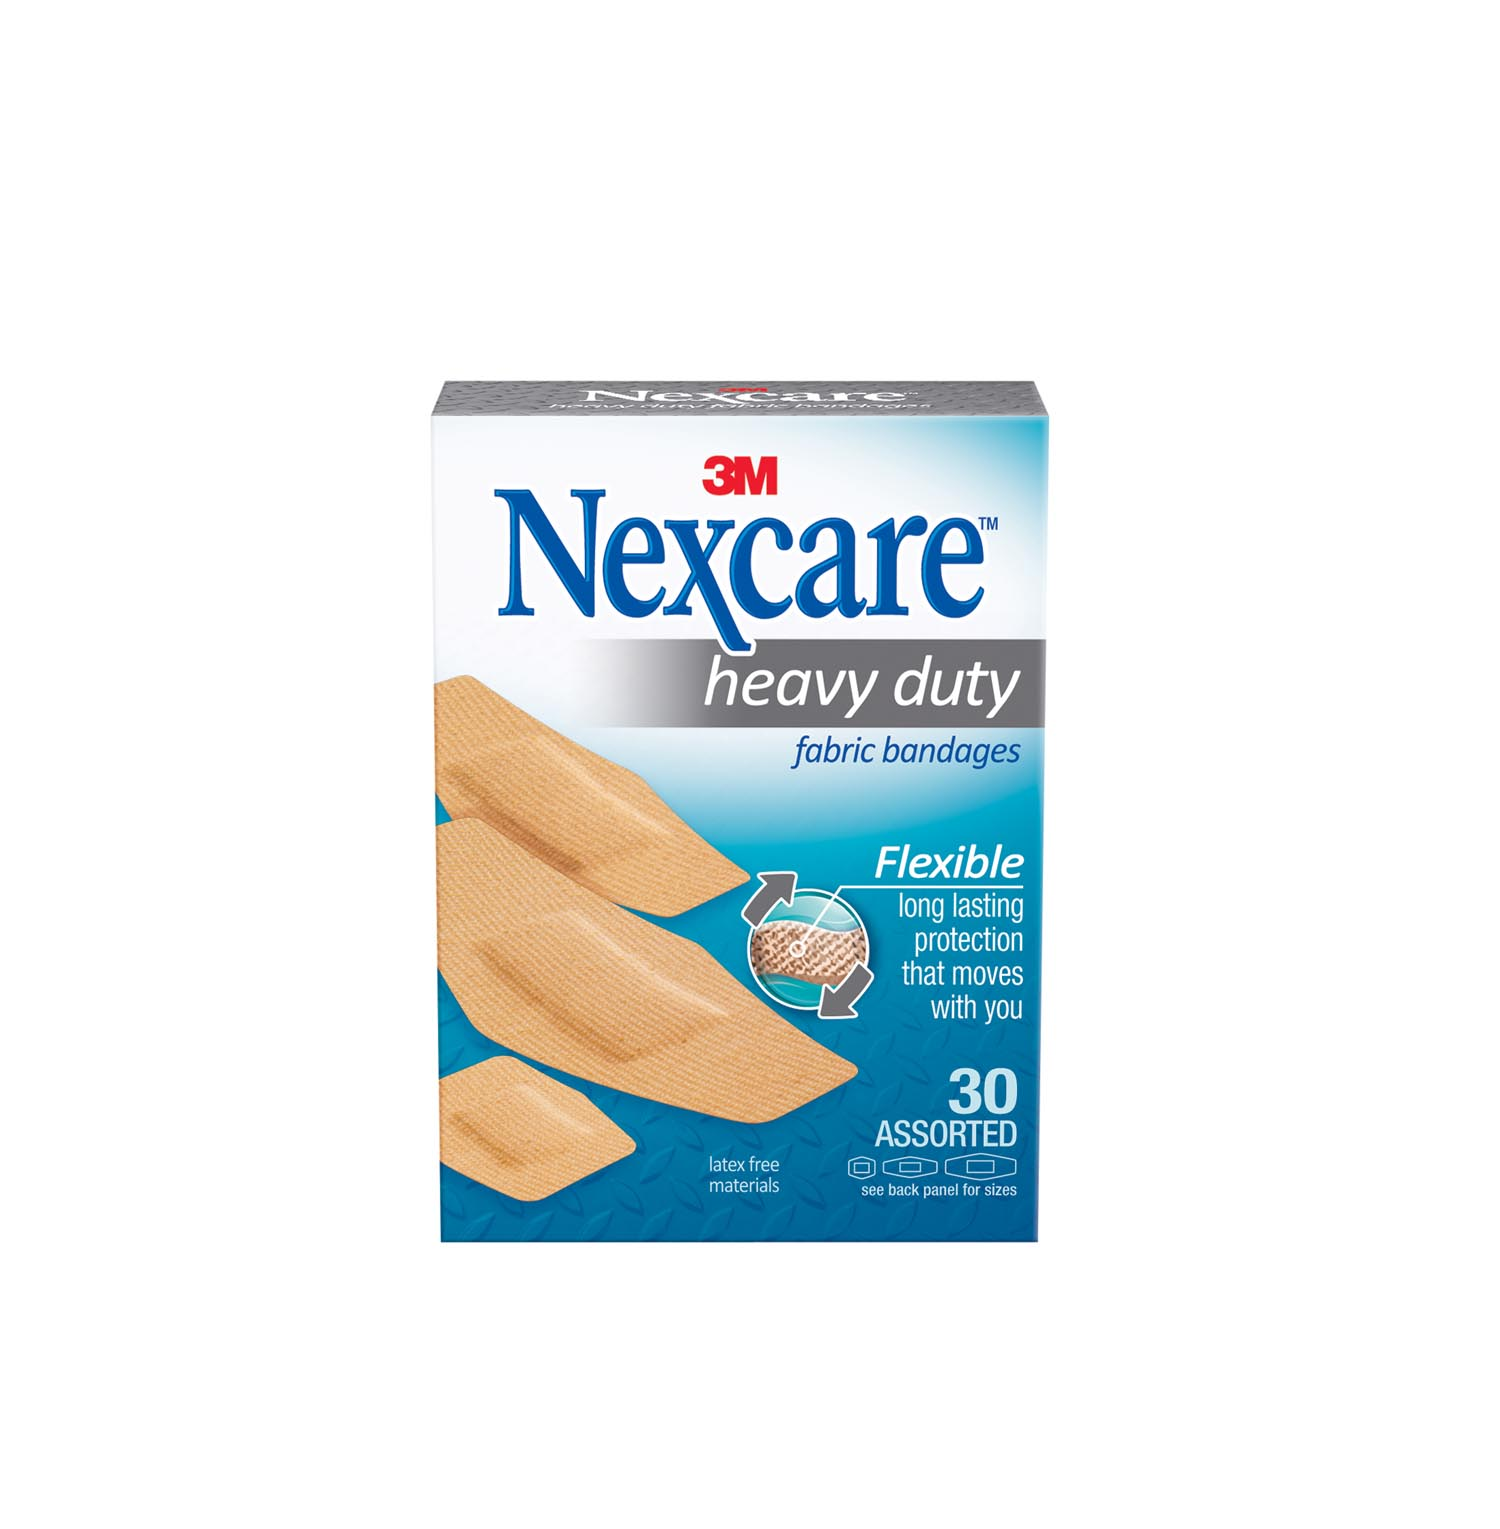 Nexcare Heavy Duty Fabric Bandages, 30 ct